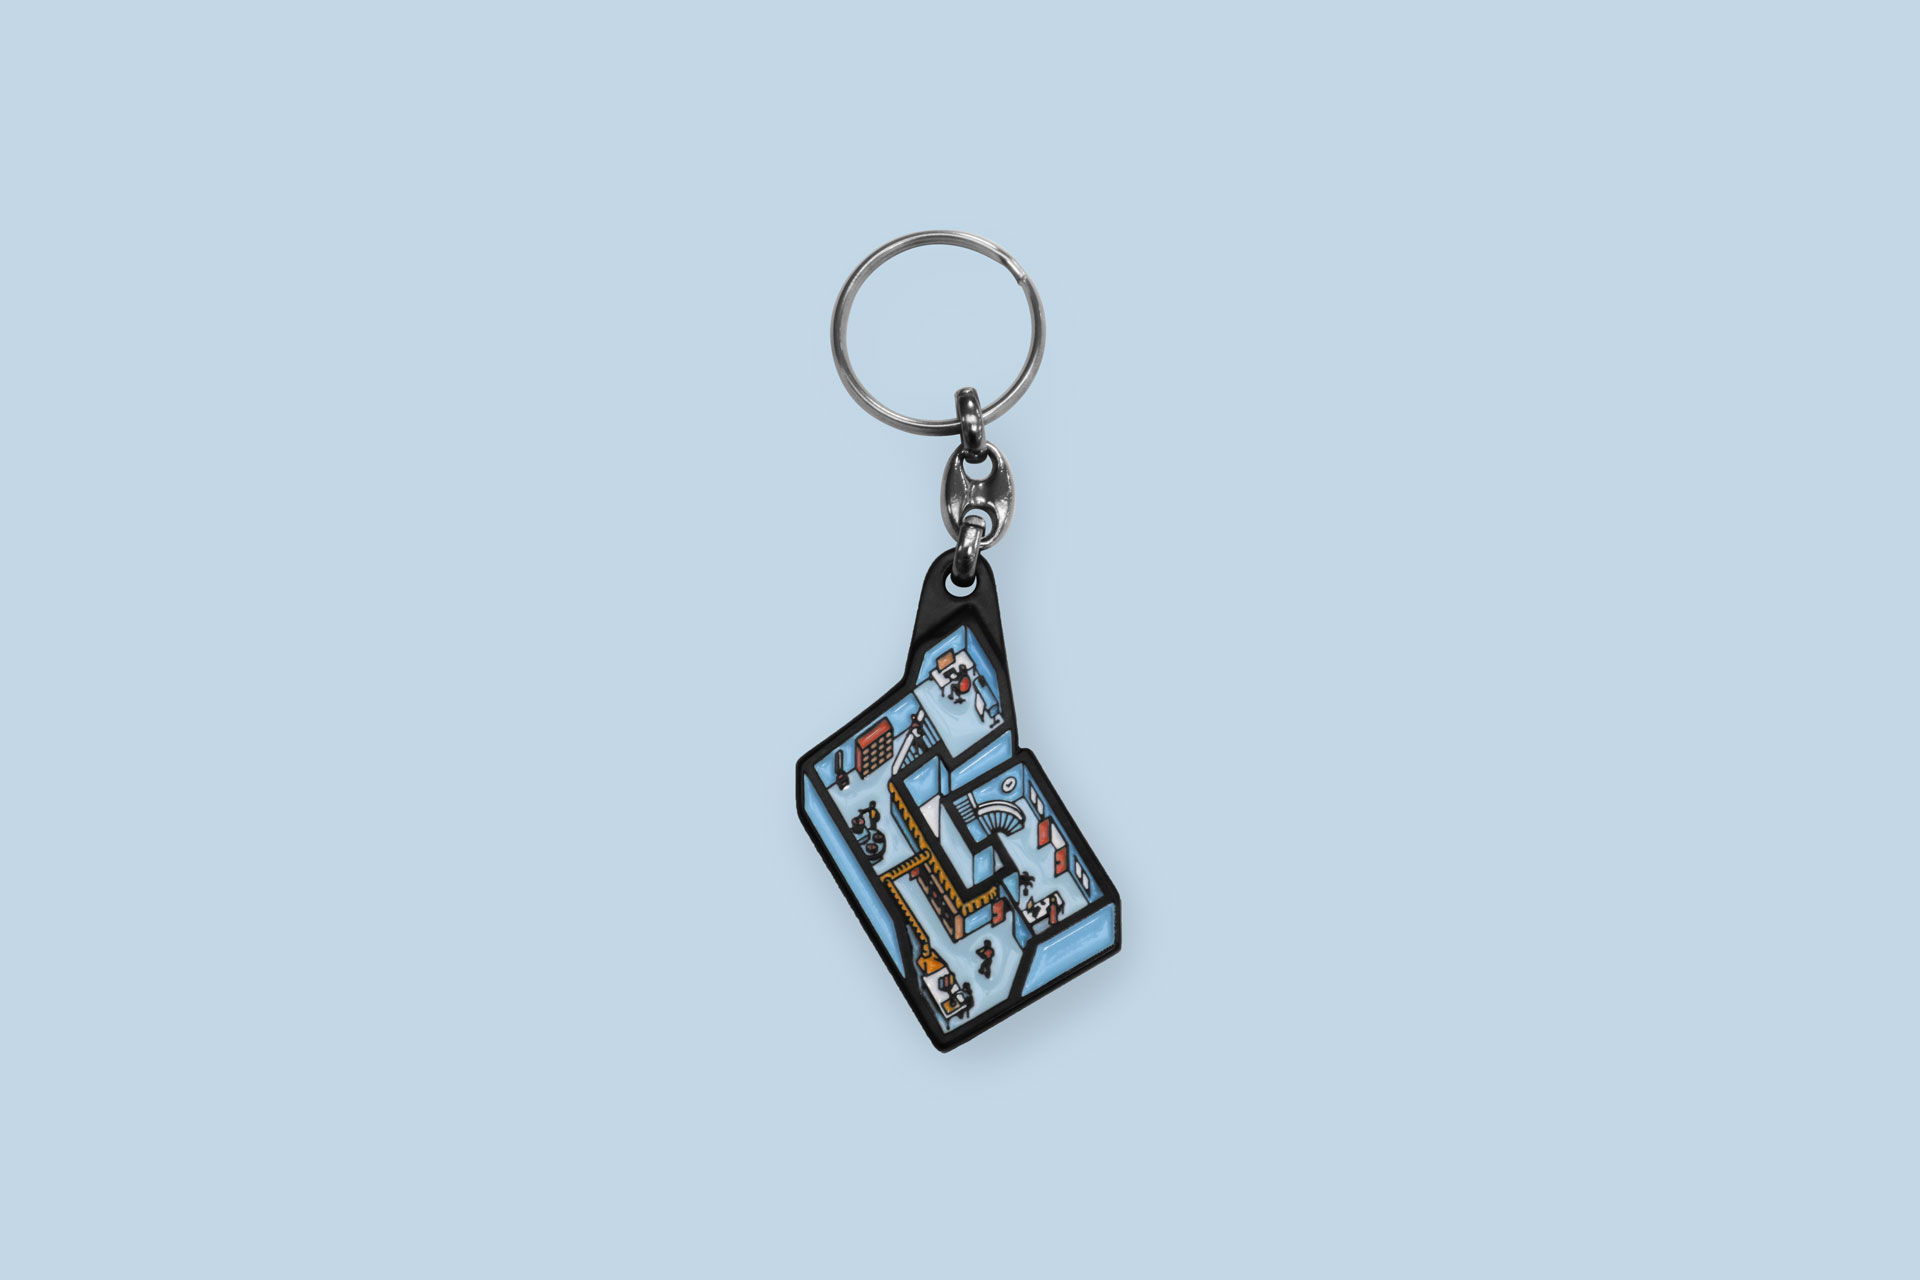 Black-plated enamel Keychain